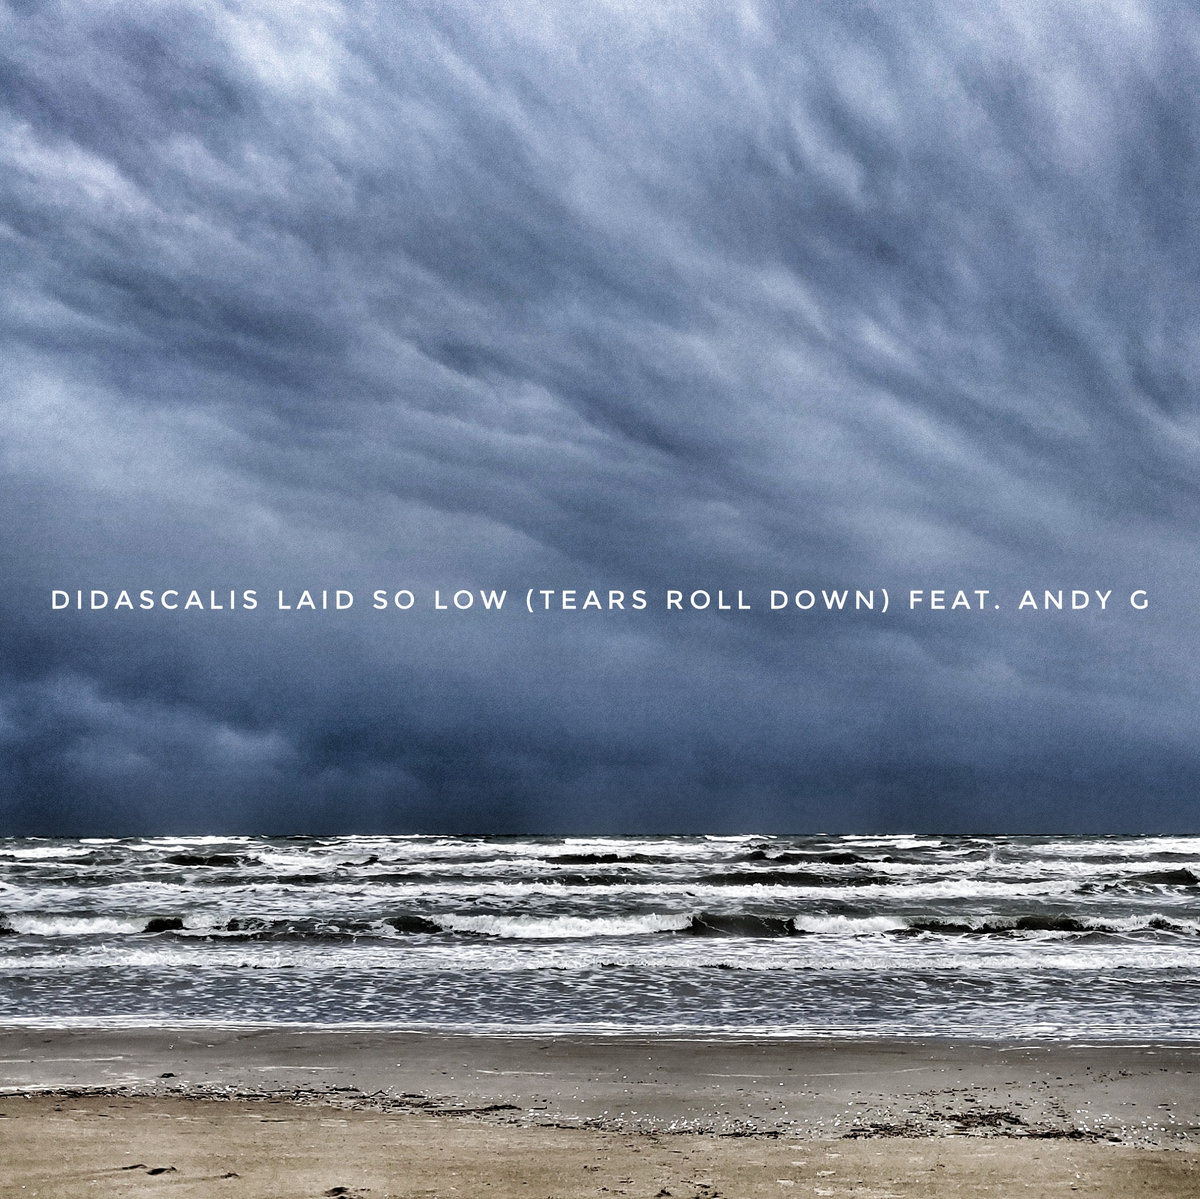 Laid So Low [Tears Roll Down] (feat. Andy G) by Didascalis